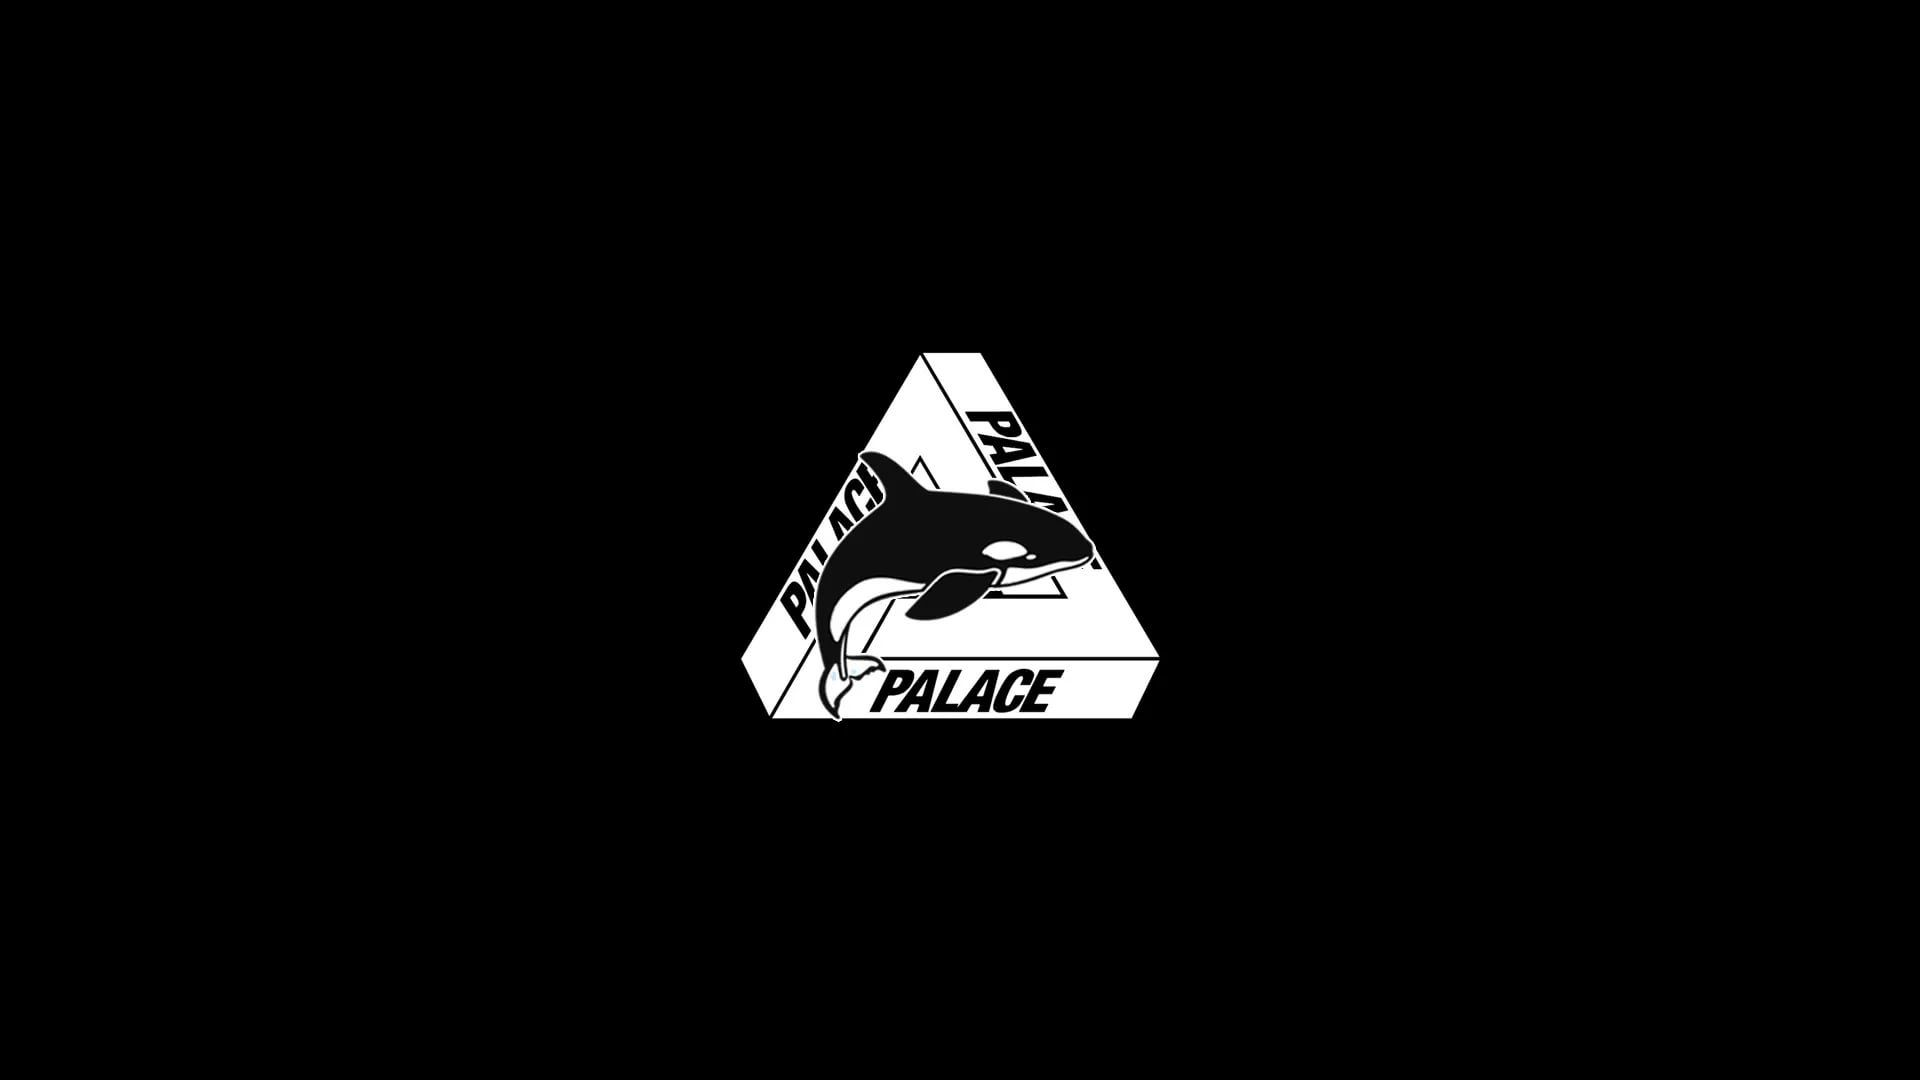 Palace Skateboards Free Wallpaper and Background